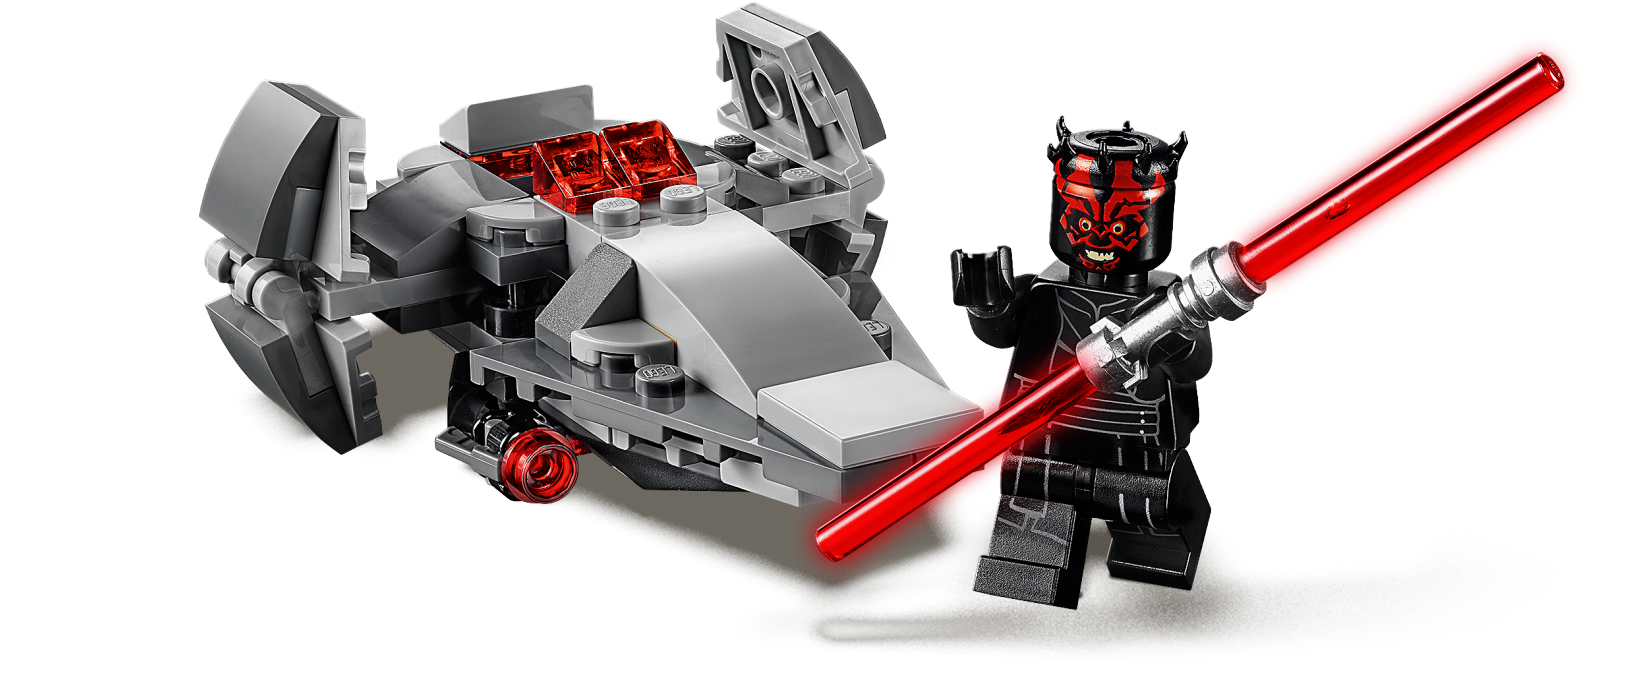 Sith Infiltrator™ Microfighter